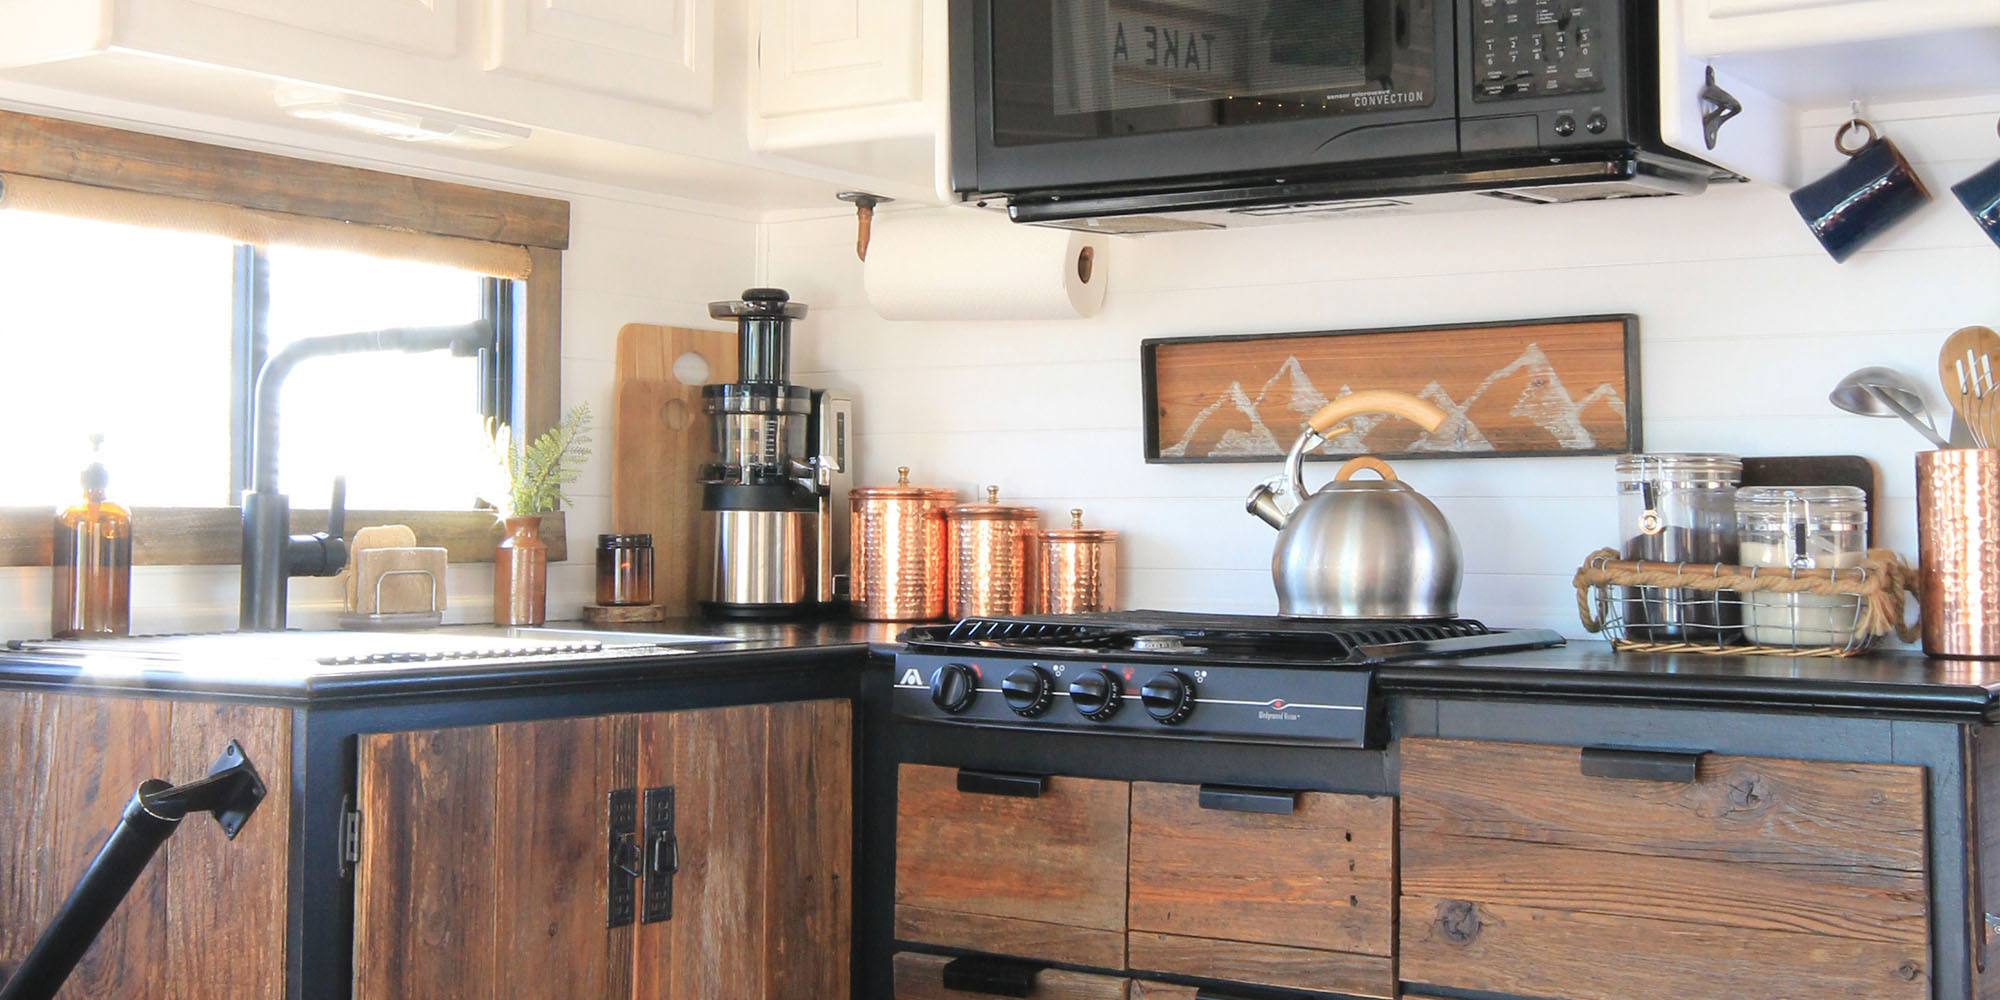 RV Kitchen backsplash ideas | MountainModernLife.com